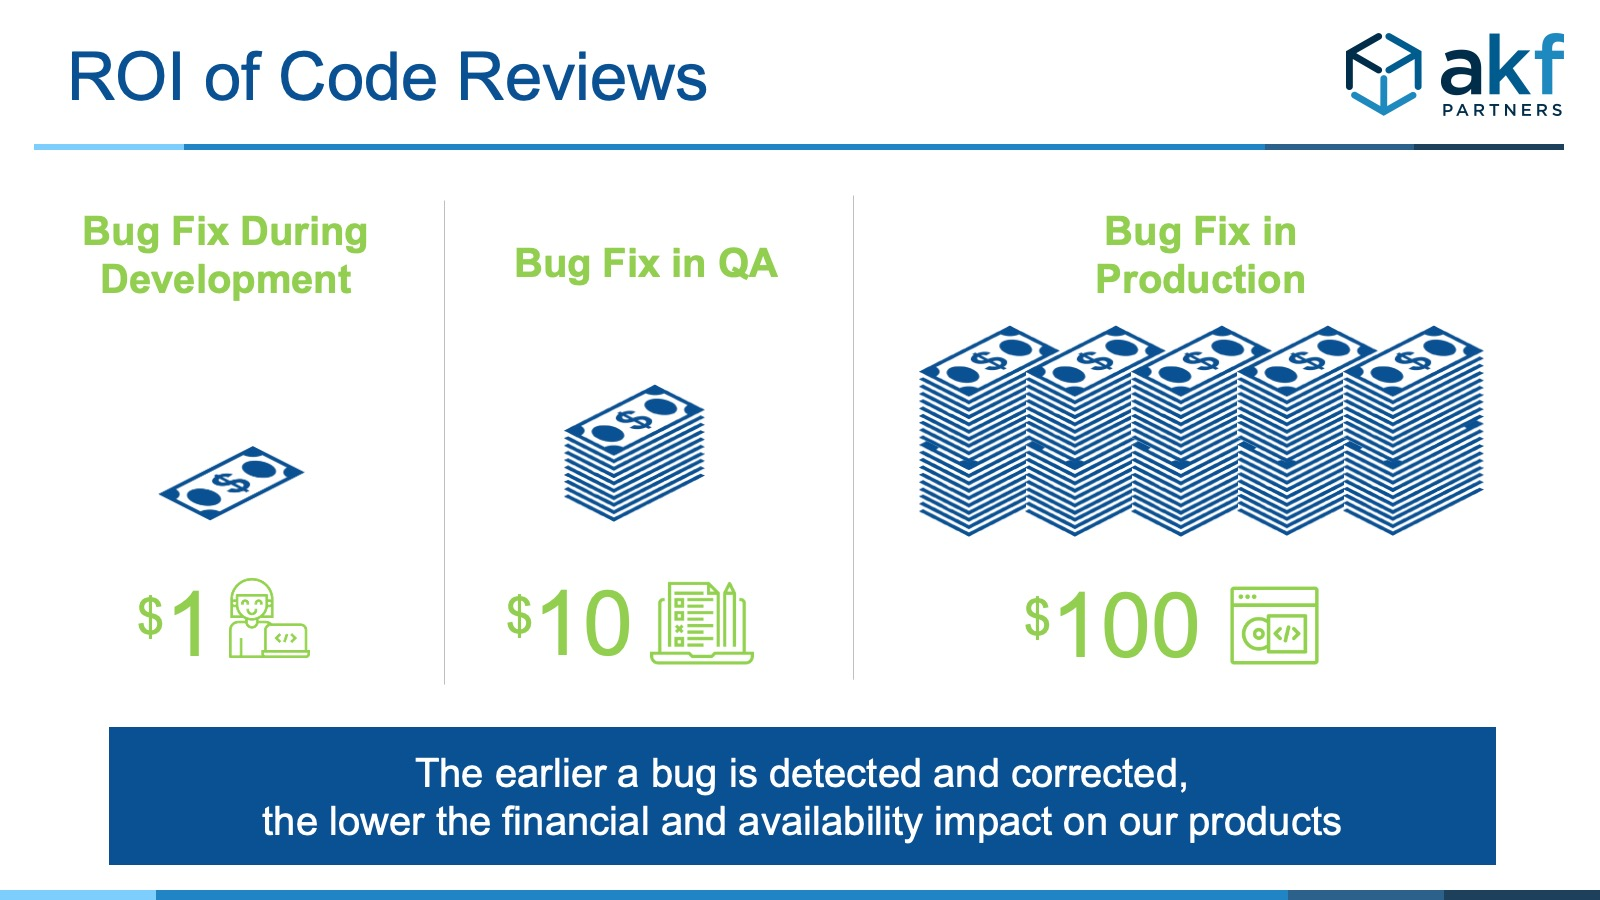 picture of increasing costs of finding a bug from development to production